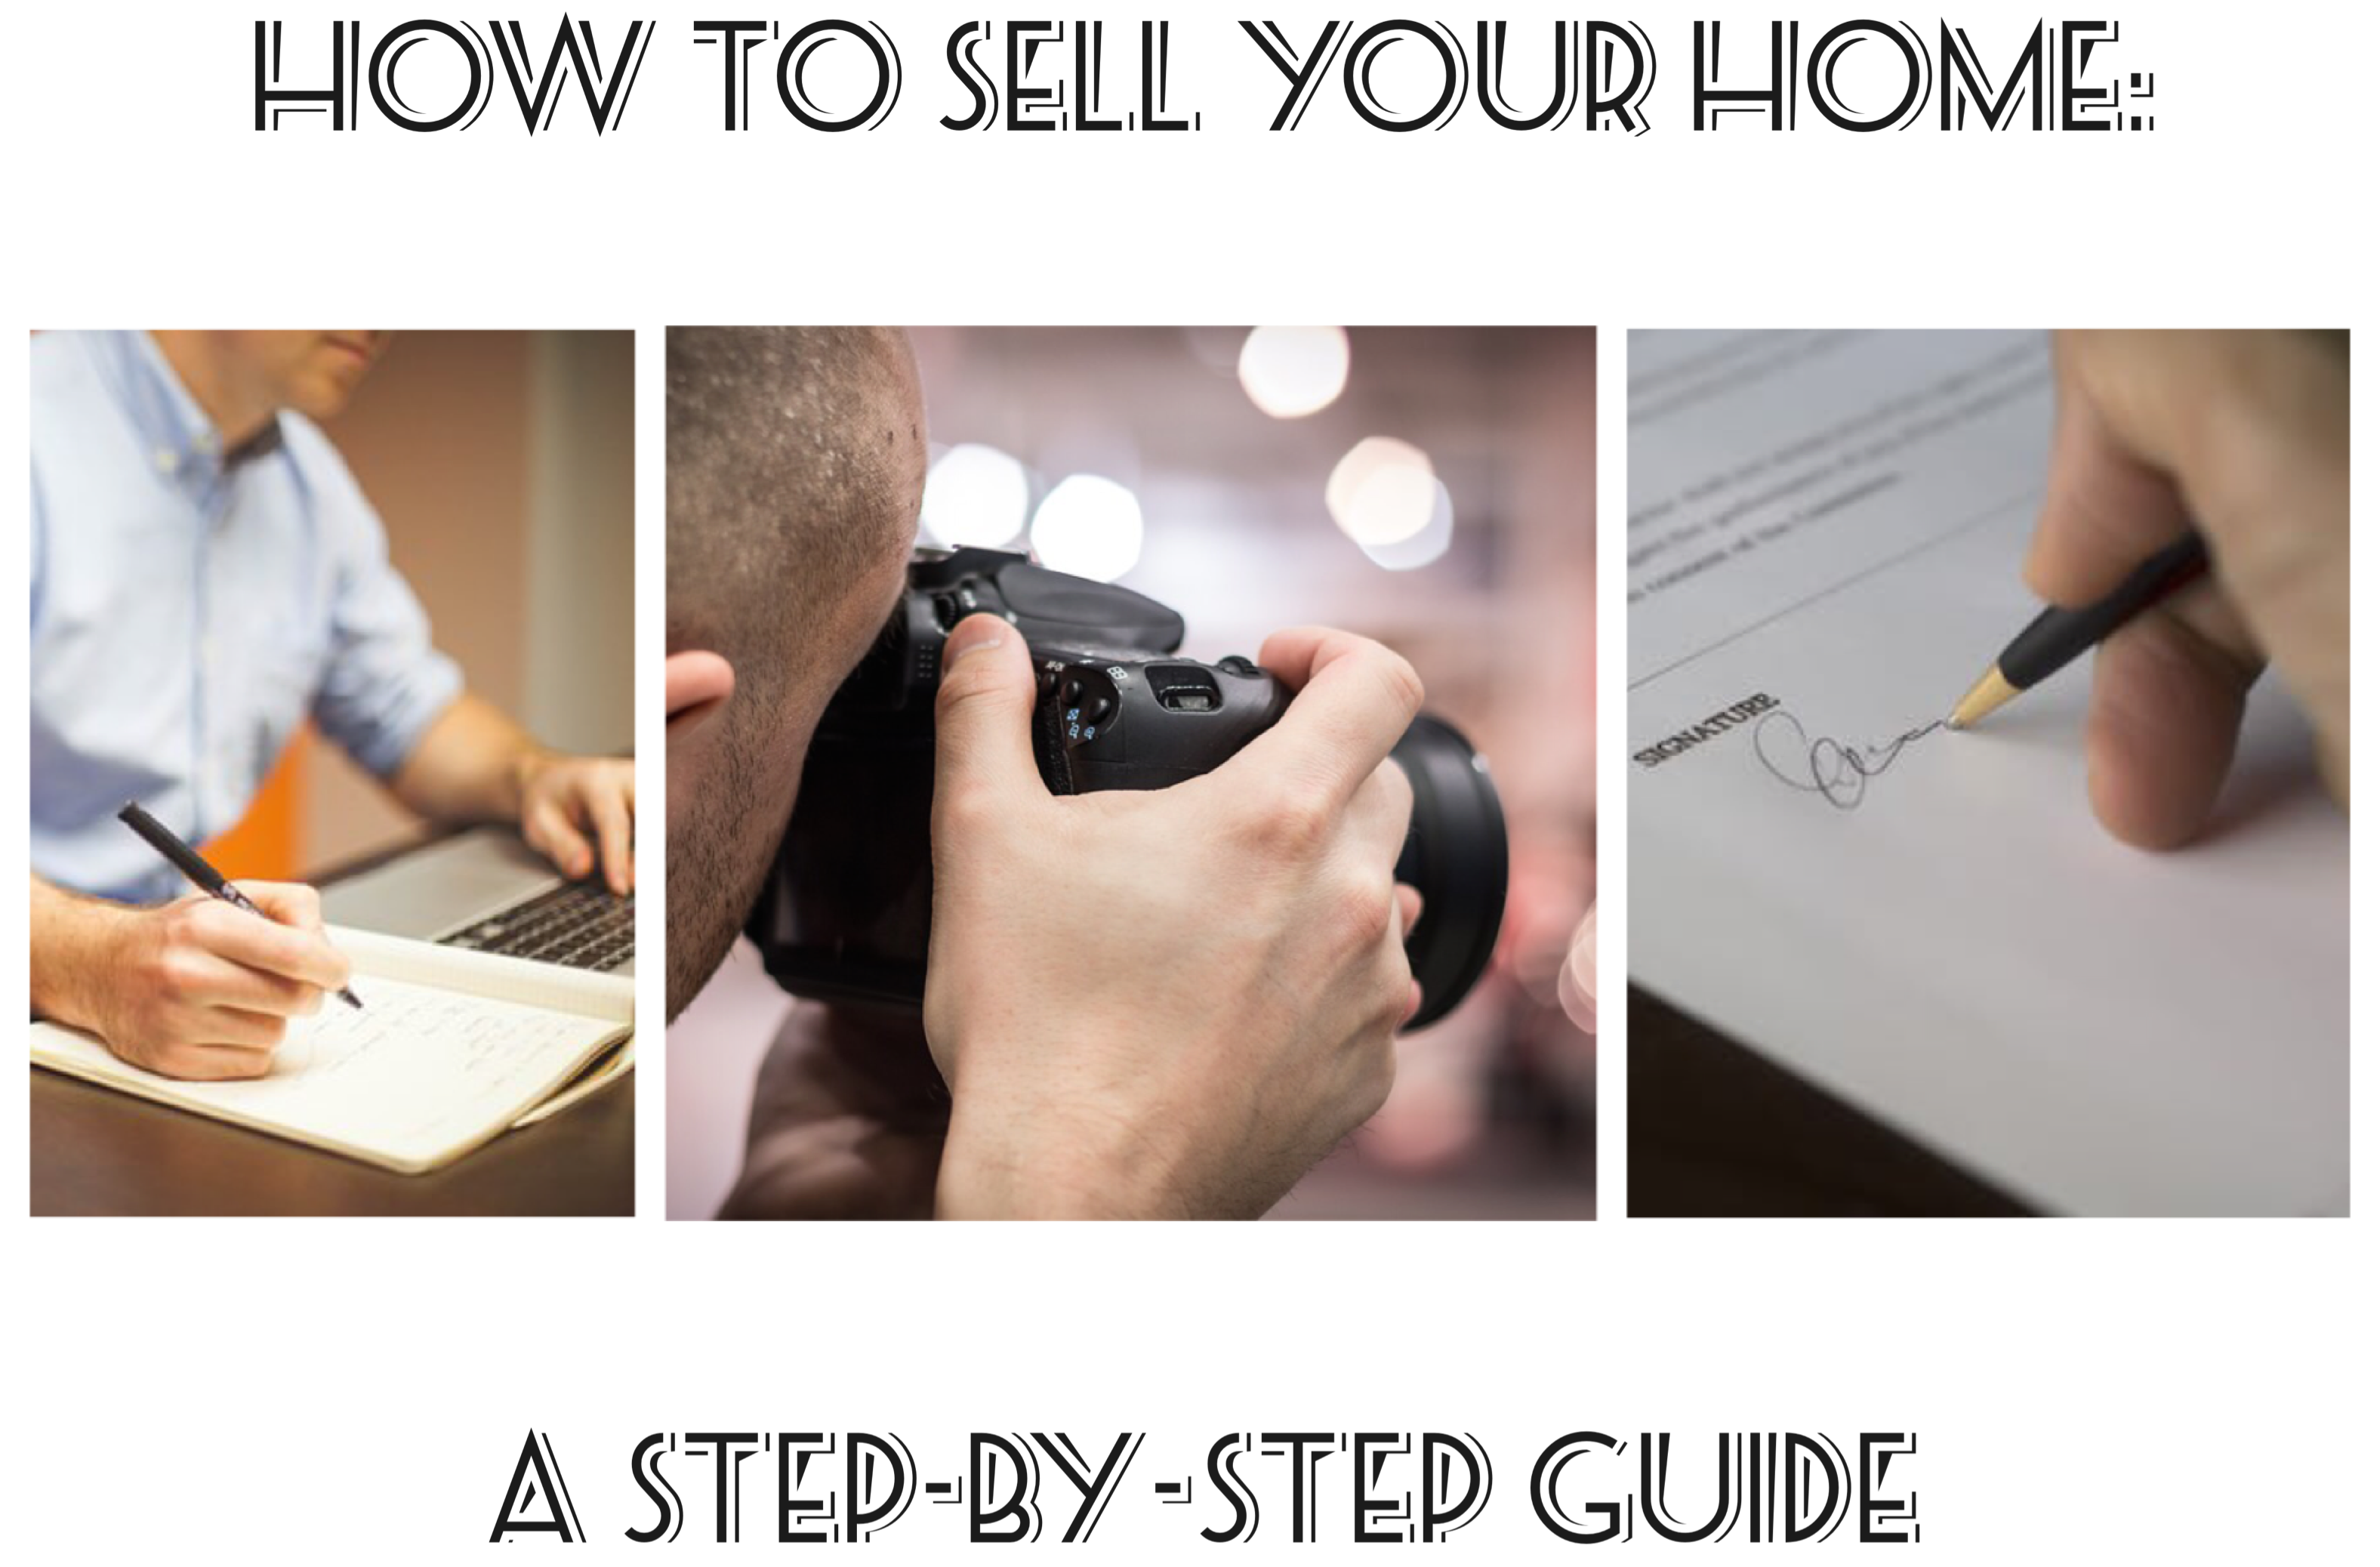 How to sell your home in Northern Colorado, Fort Collins